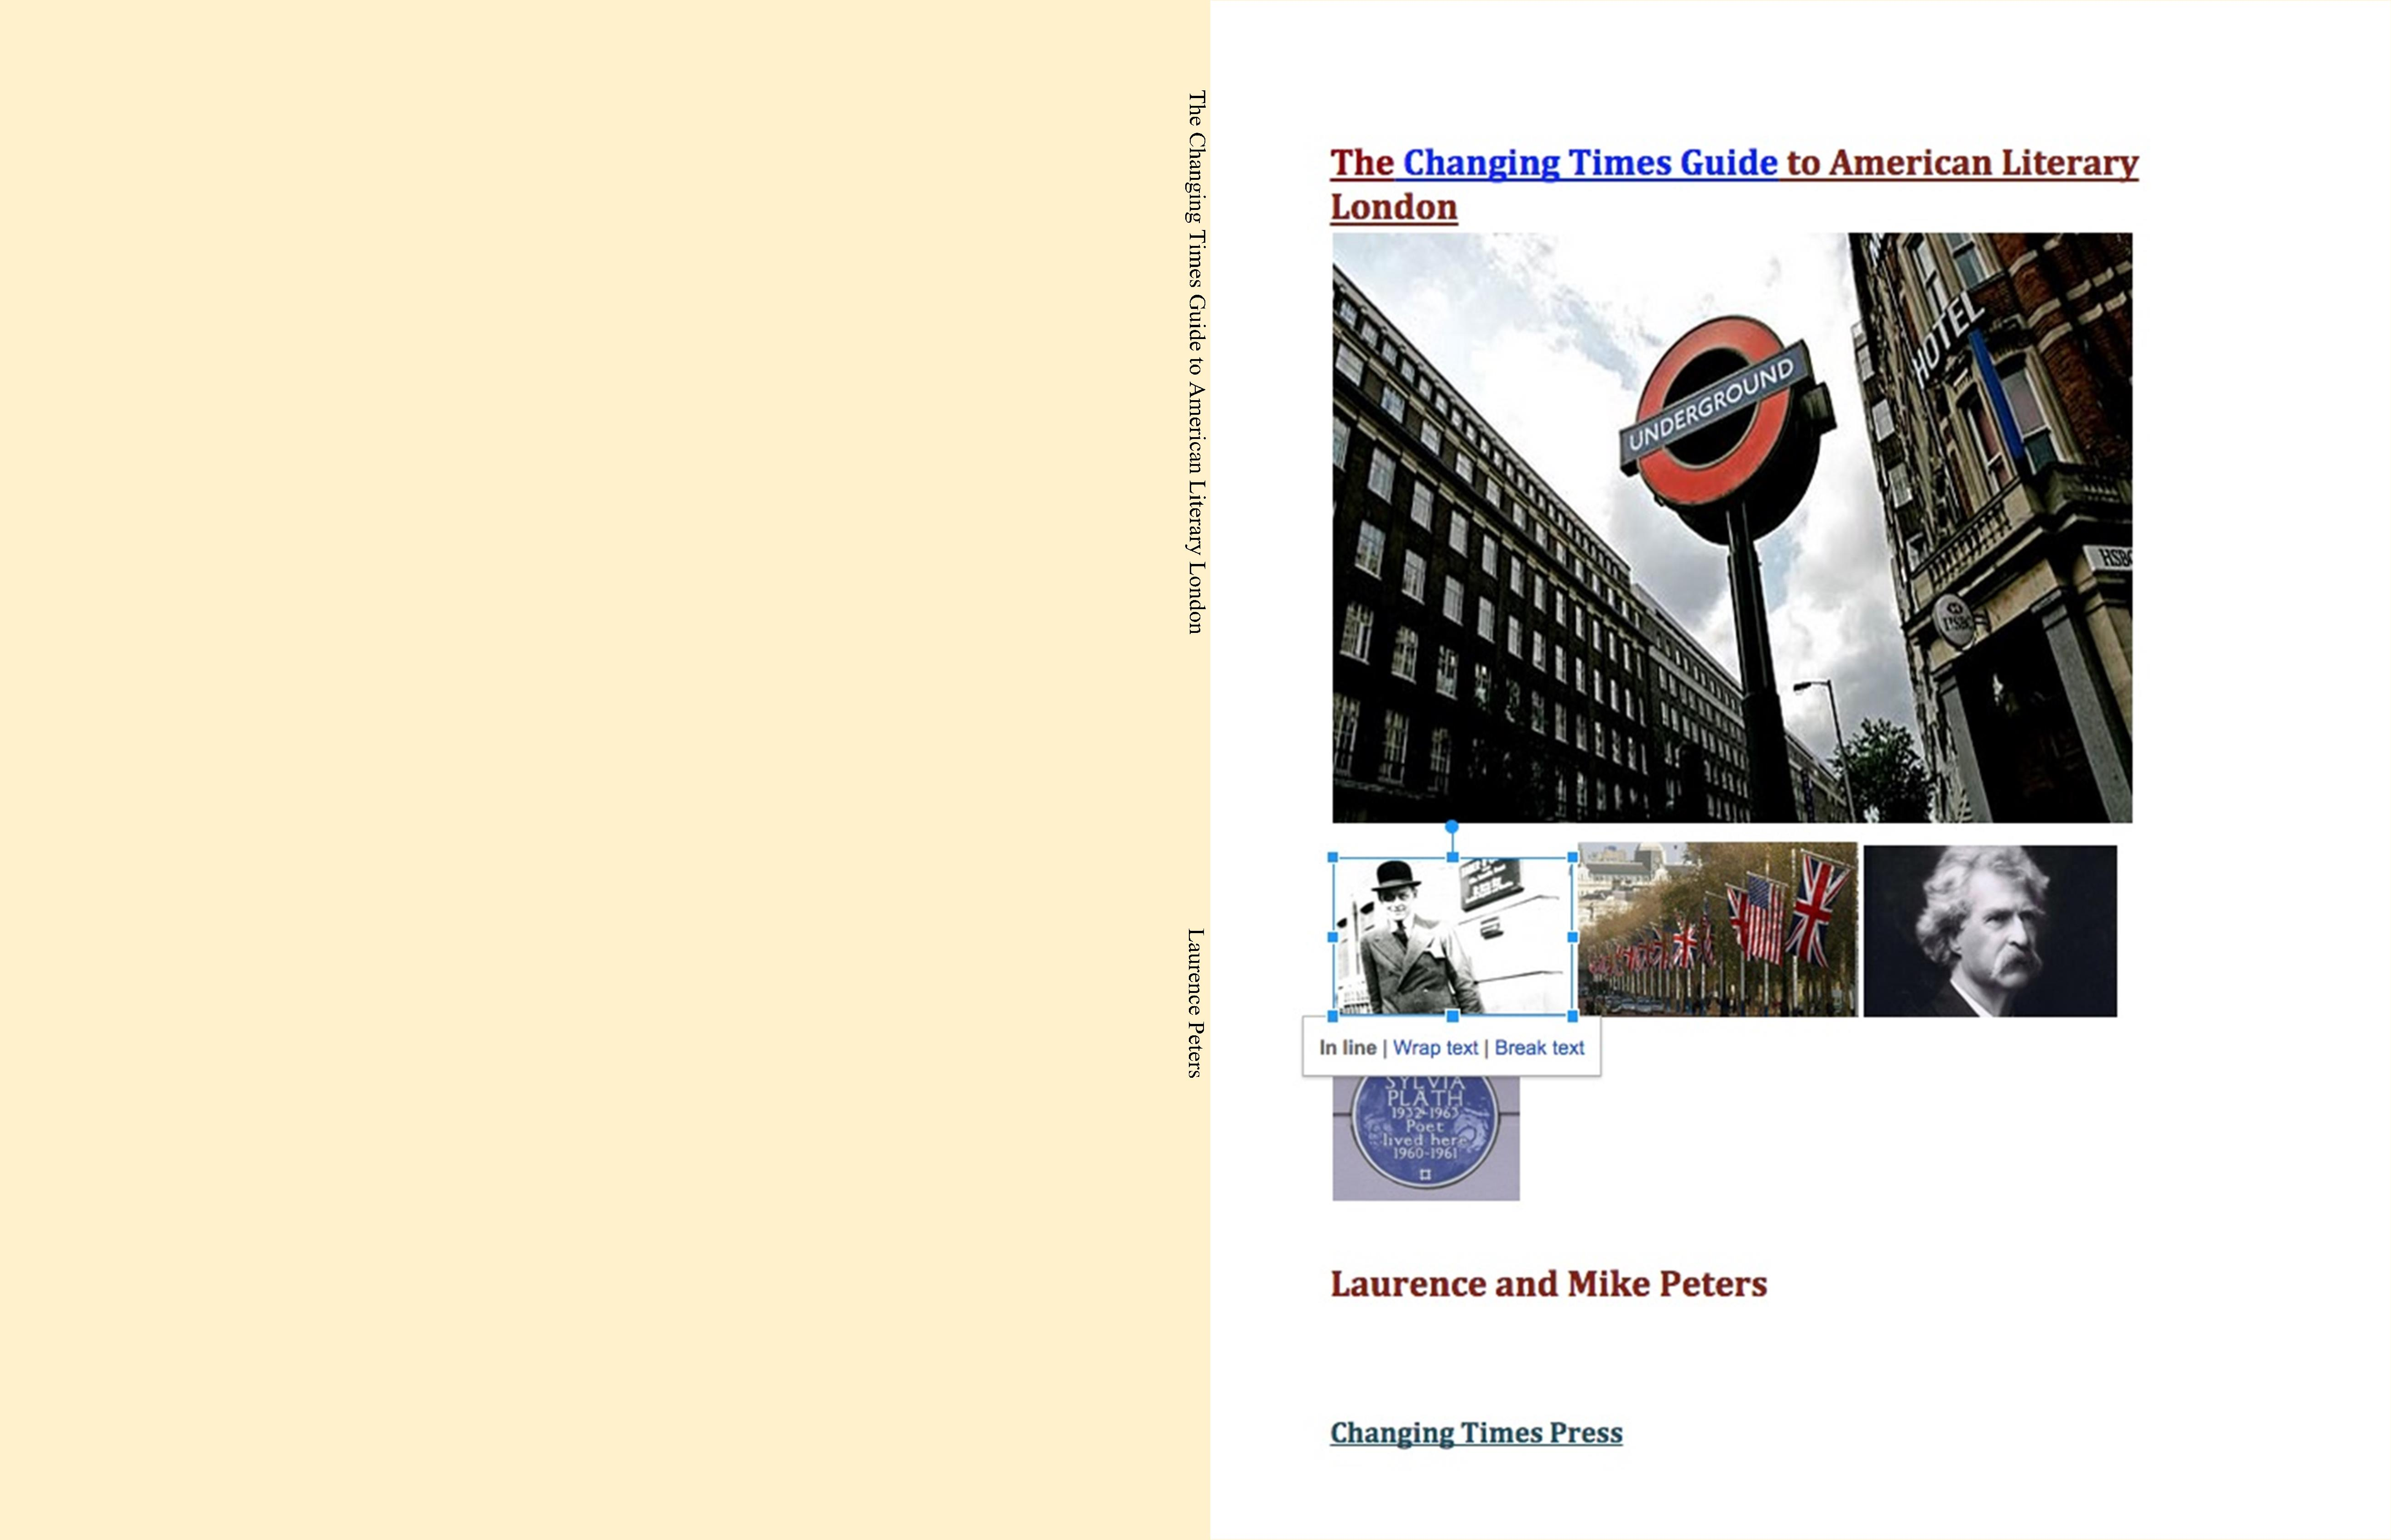 The Changing Times Guide to American Literary London cover image